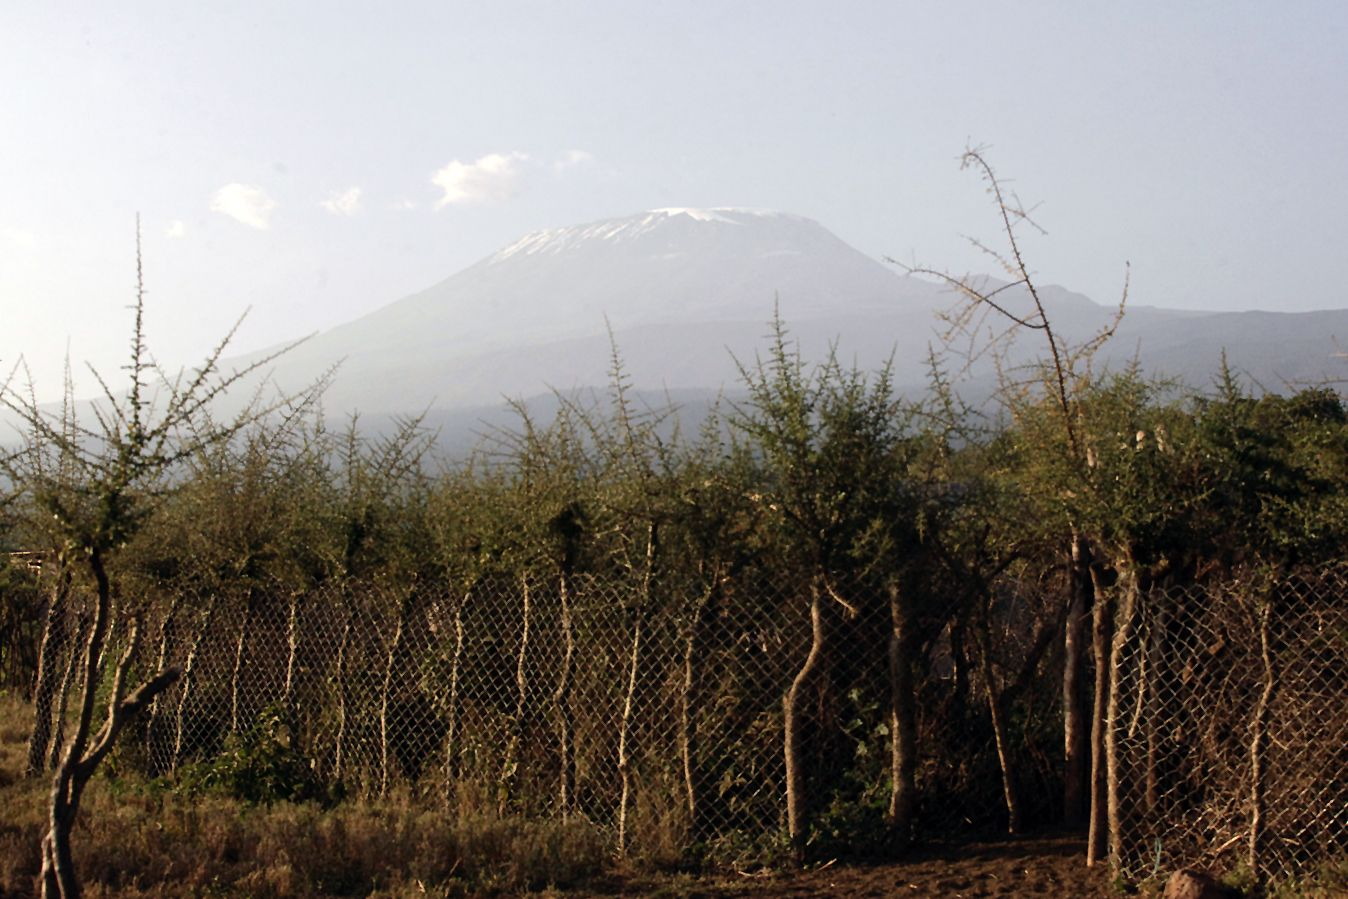 The West Kilimanjaro landscape in northern Tanzania